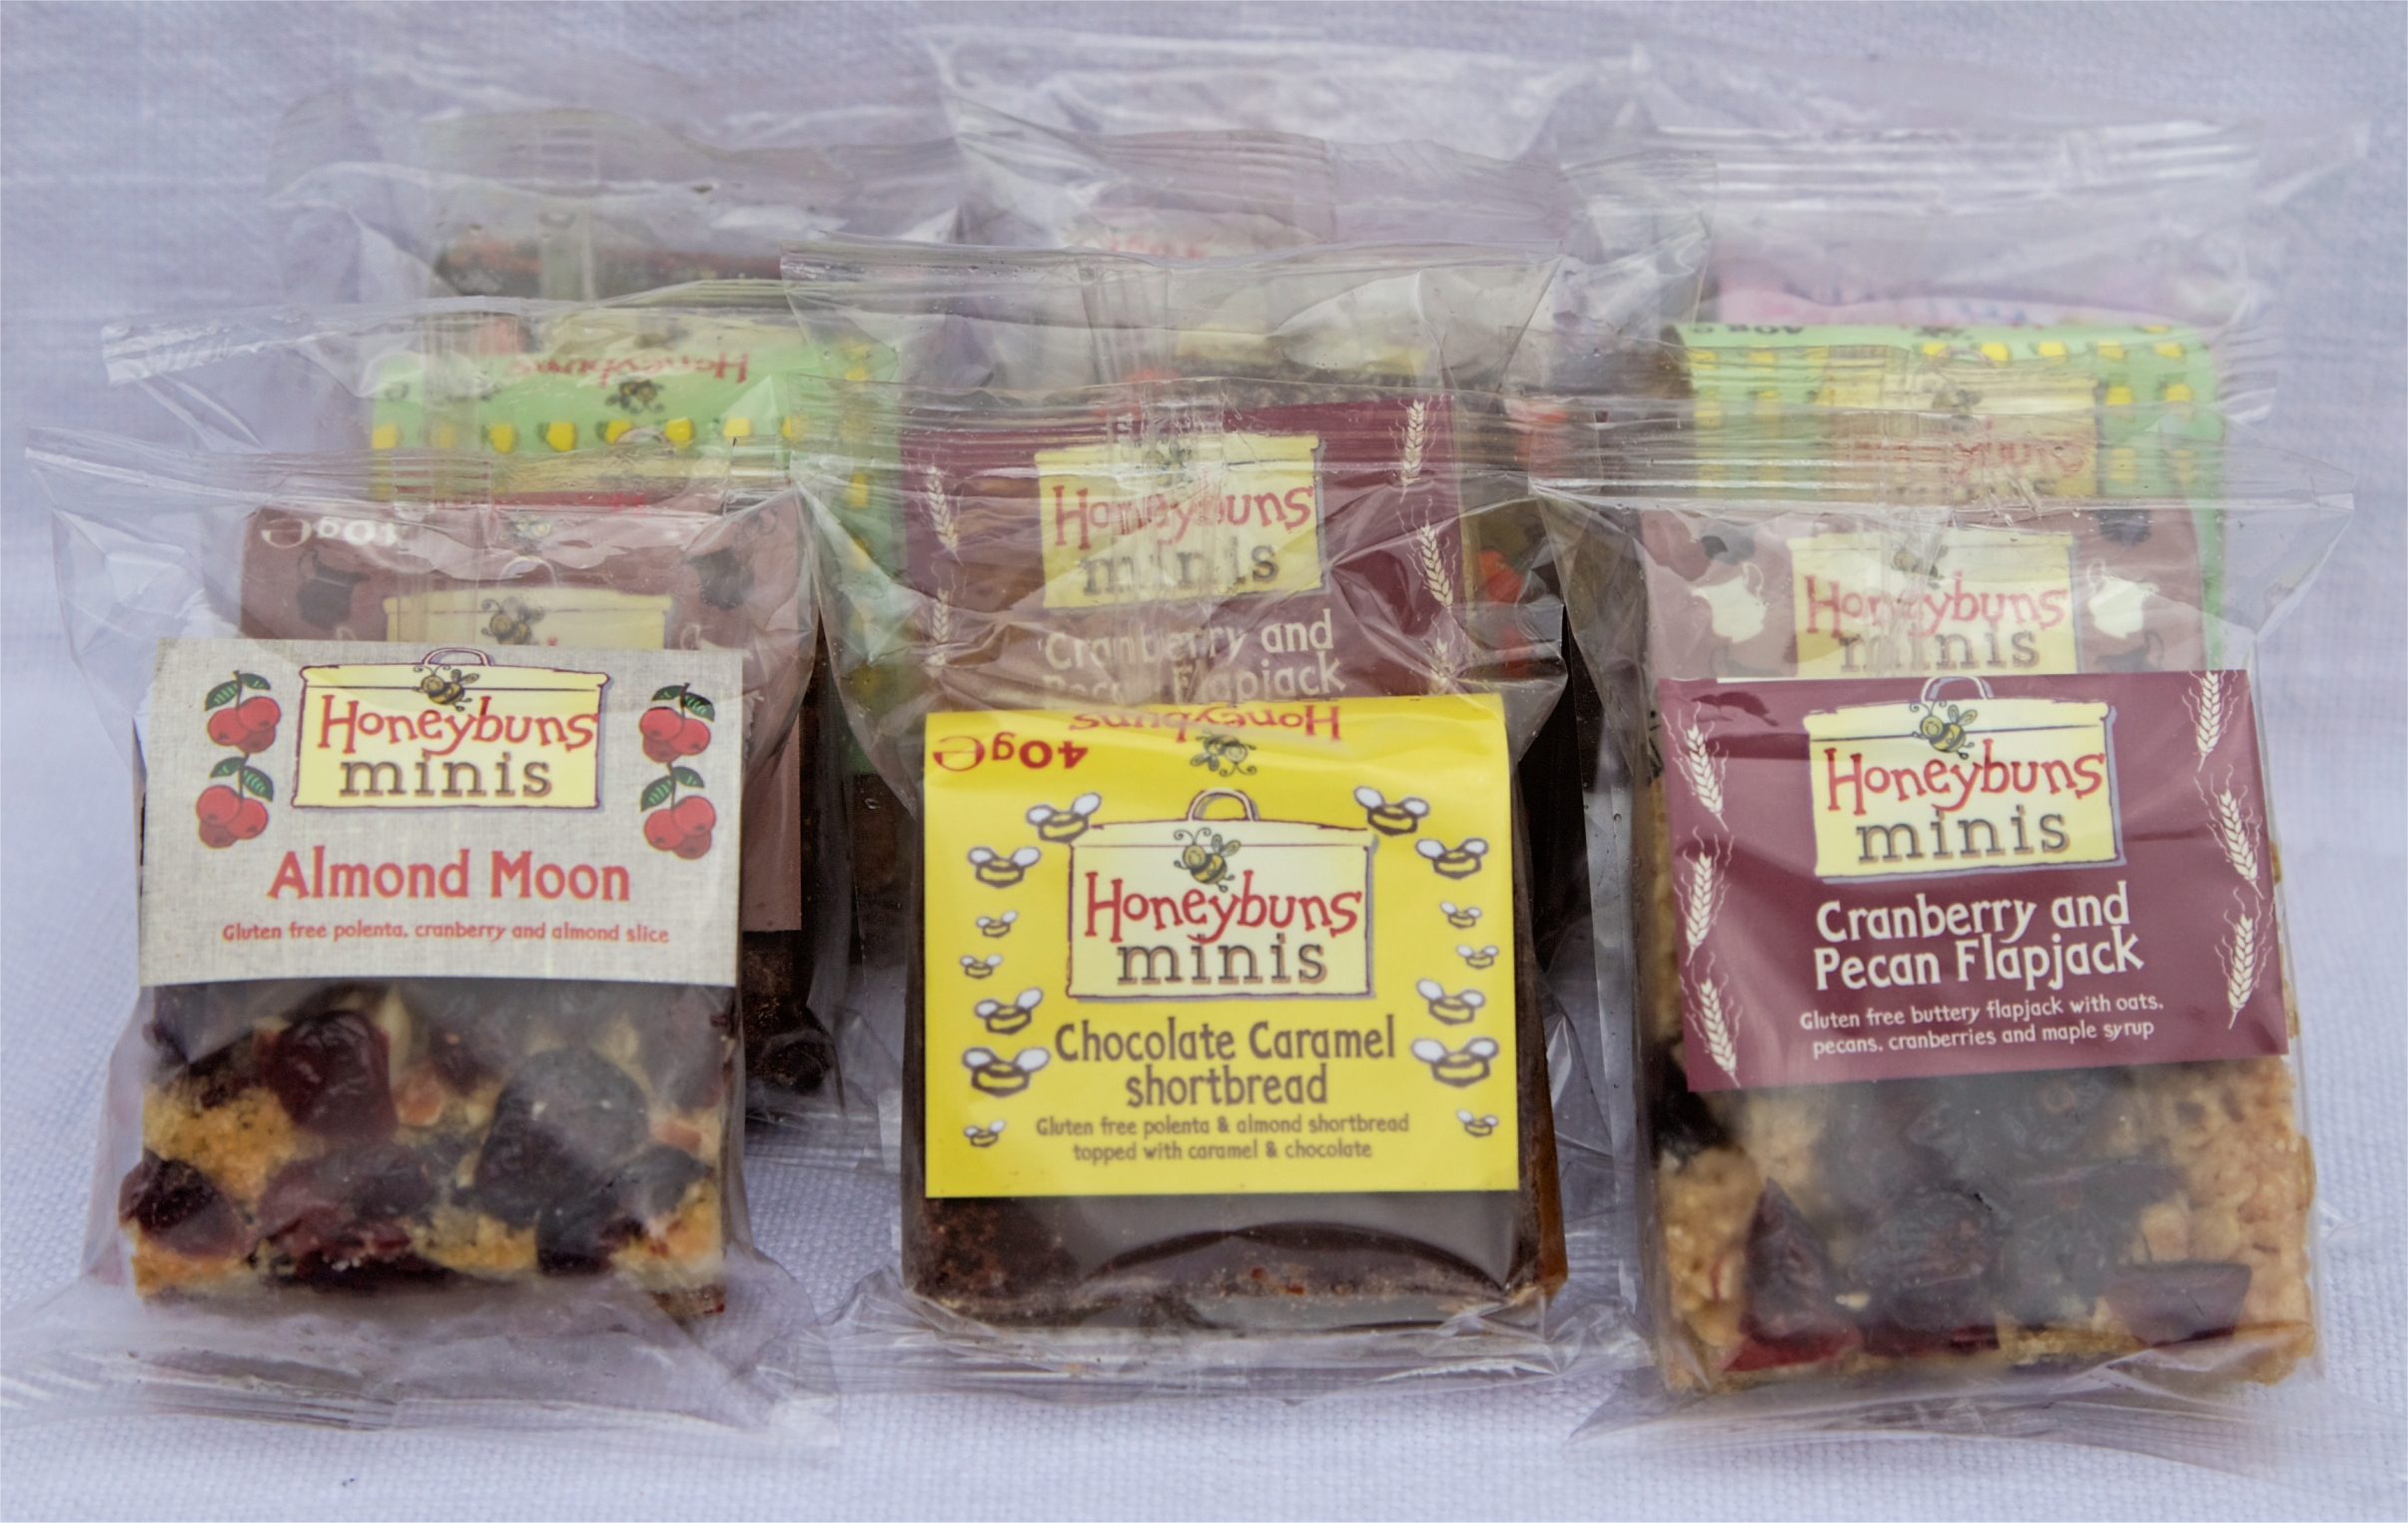 Selection of Honeybuns minis in packaging